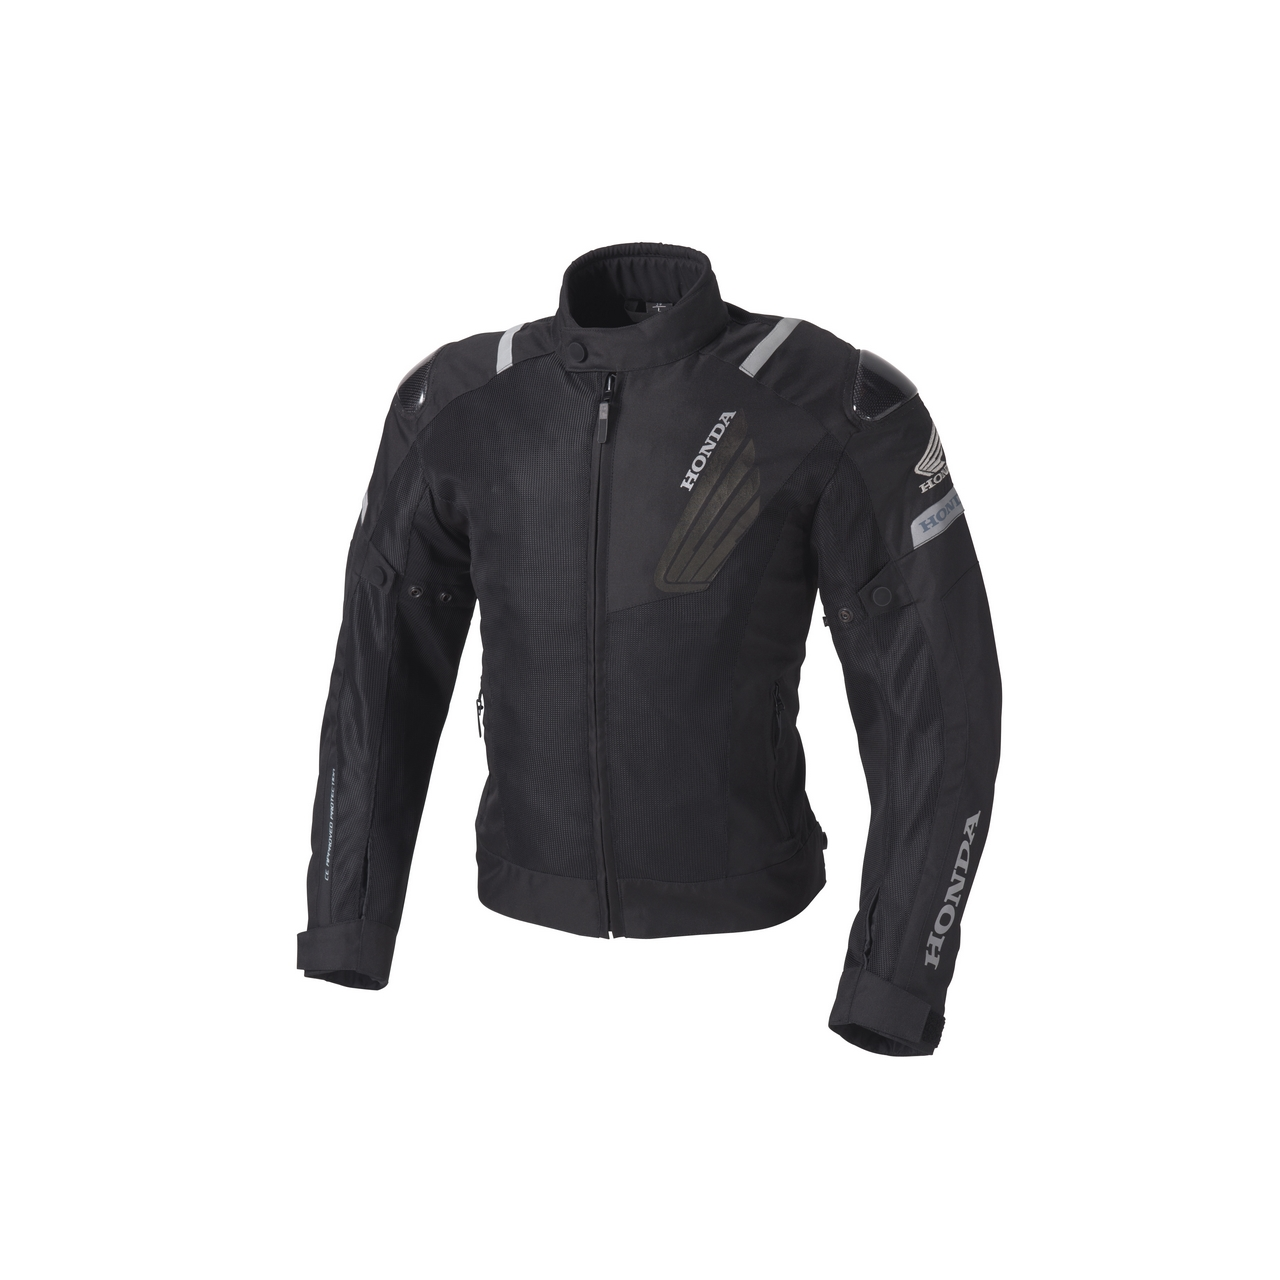 Carbon Protect Mesh Jacket